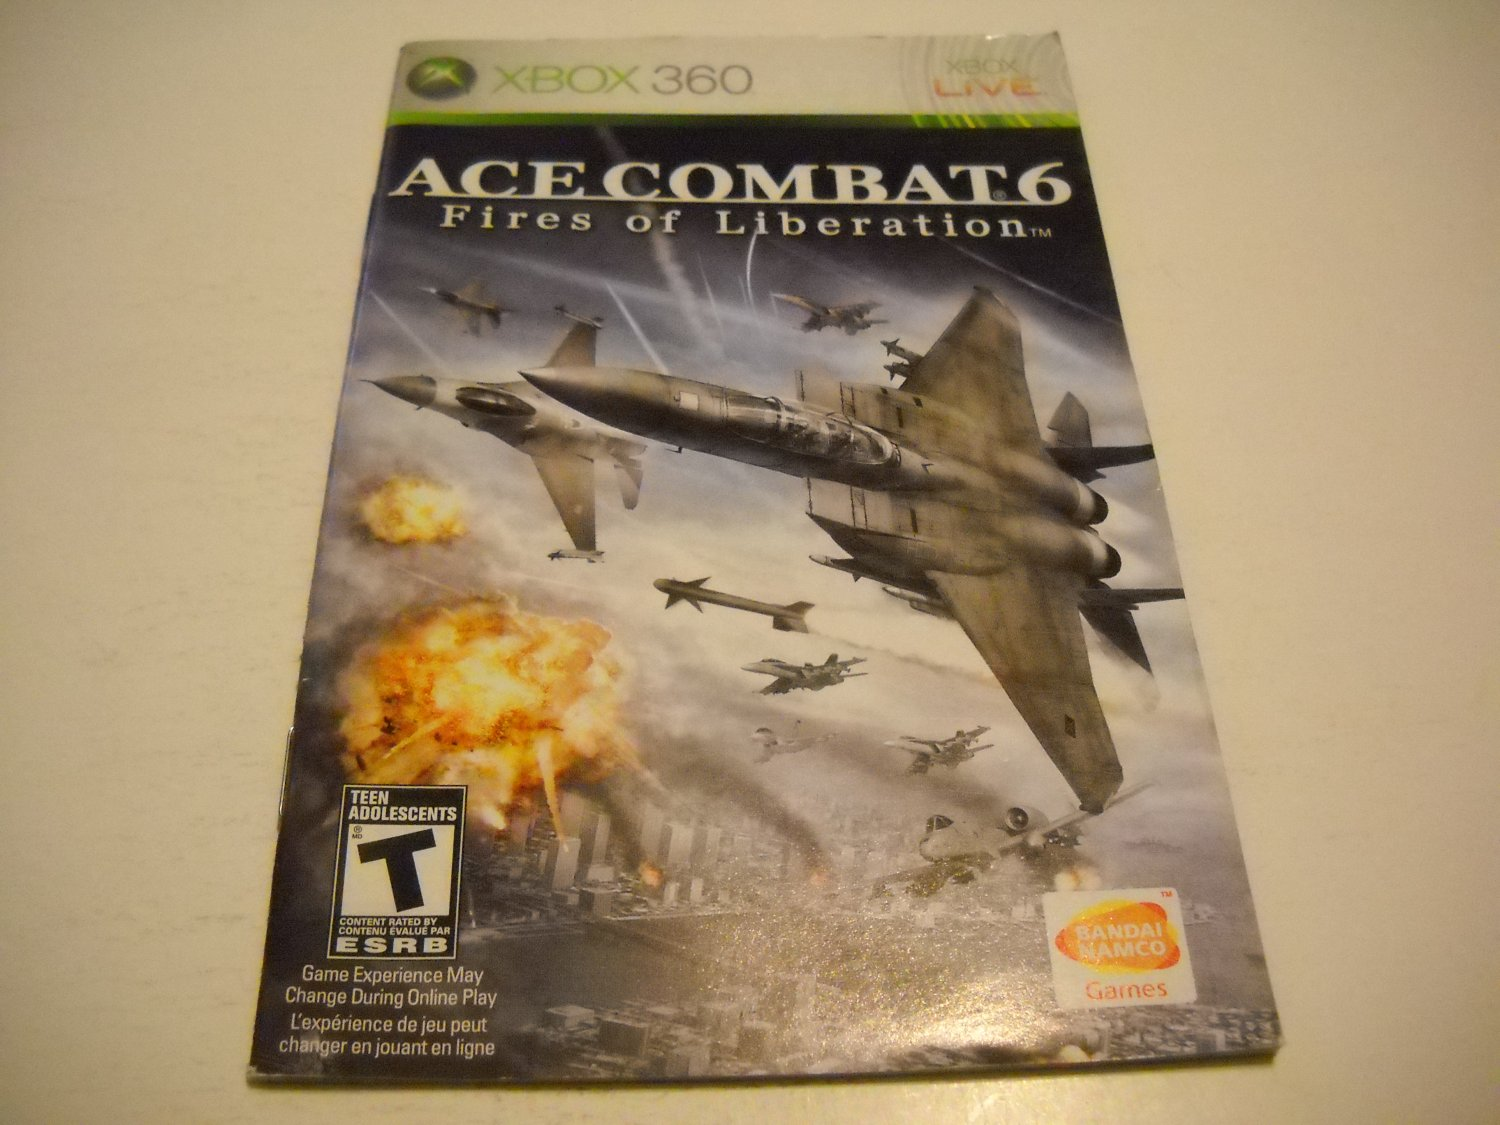 Manual ONLY ~  for Ace Combat 6 Fires of Liberation   - Xbox 360 Instruction Booklet